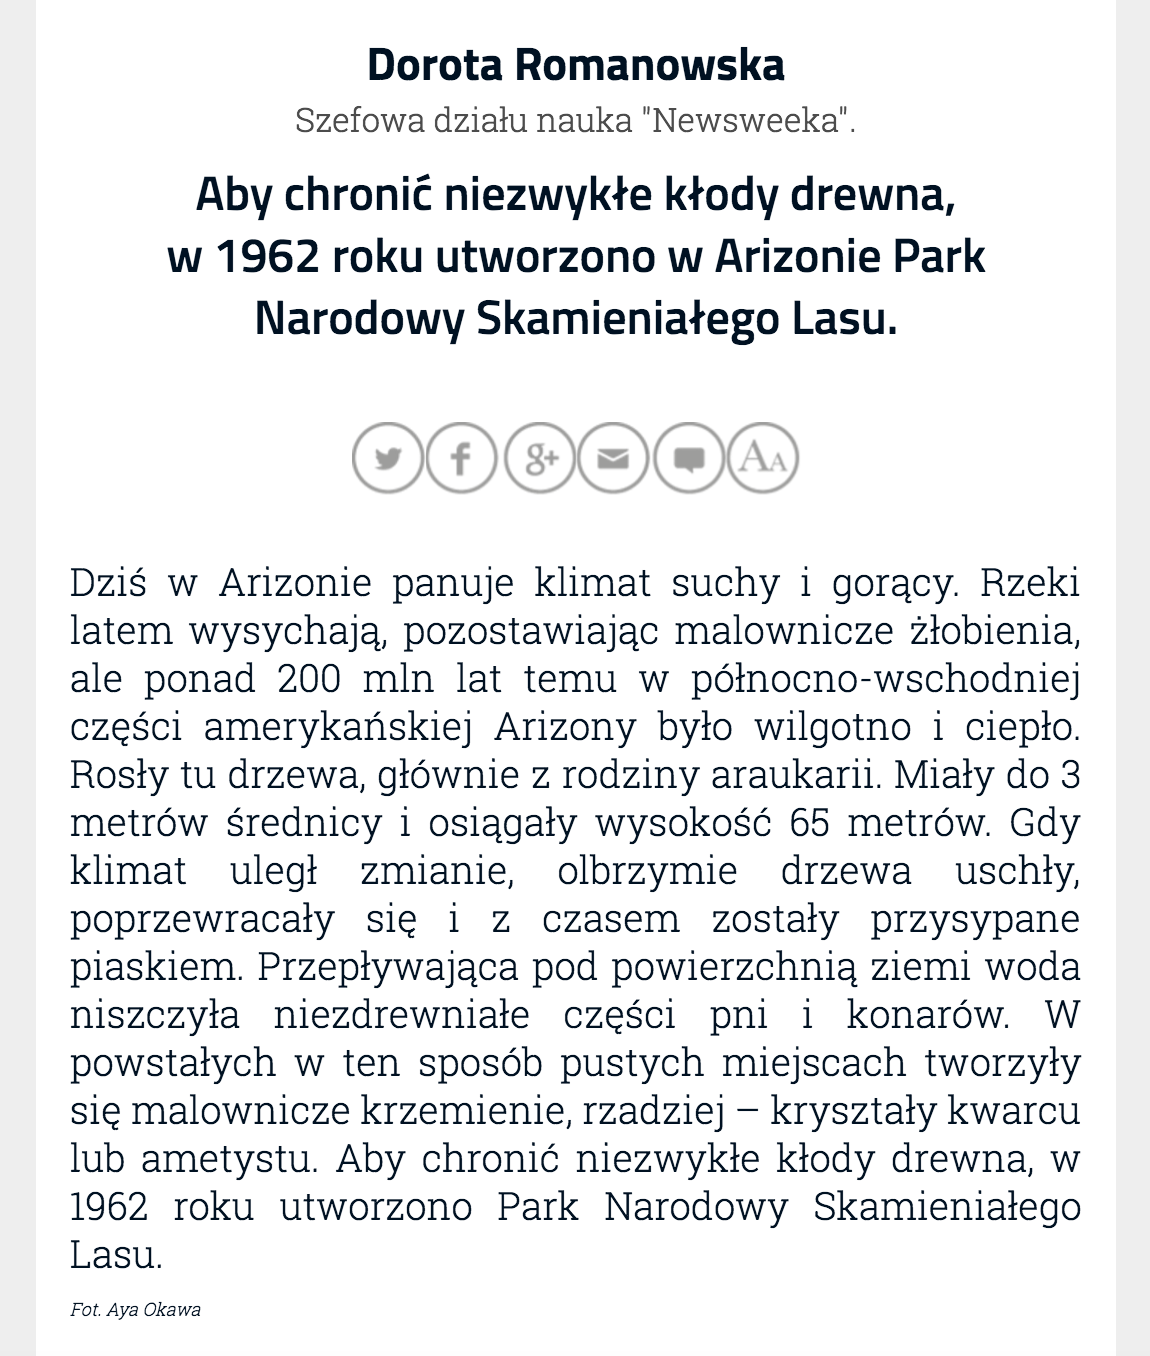 Issue Home Page: http://m.newsweek.pl/wydania/2162